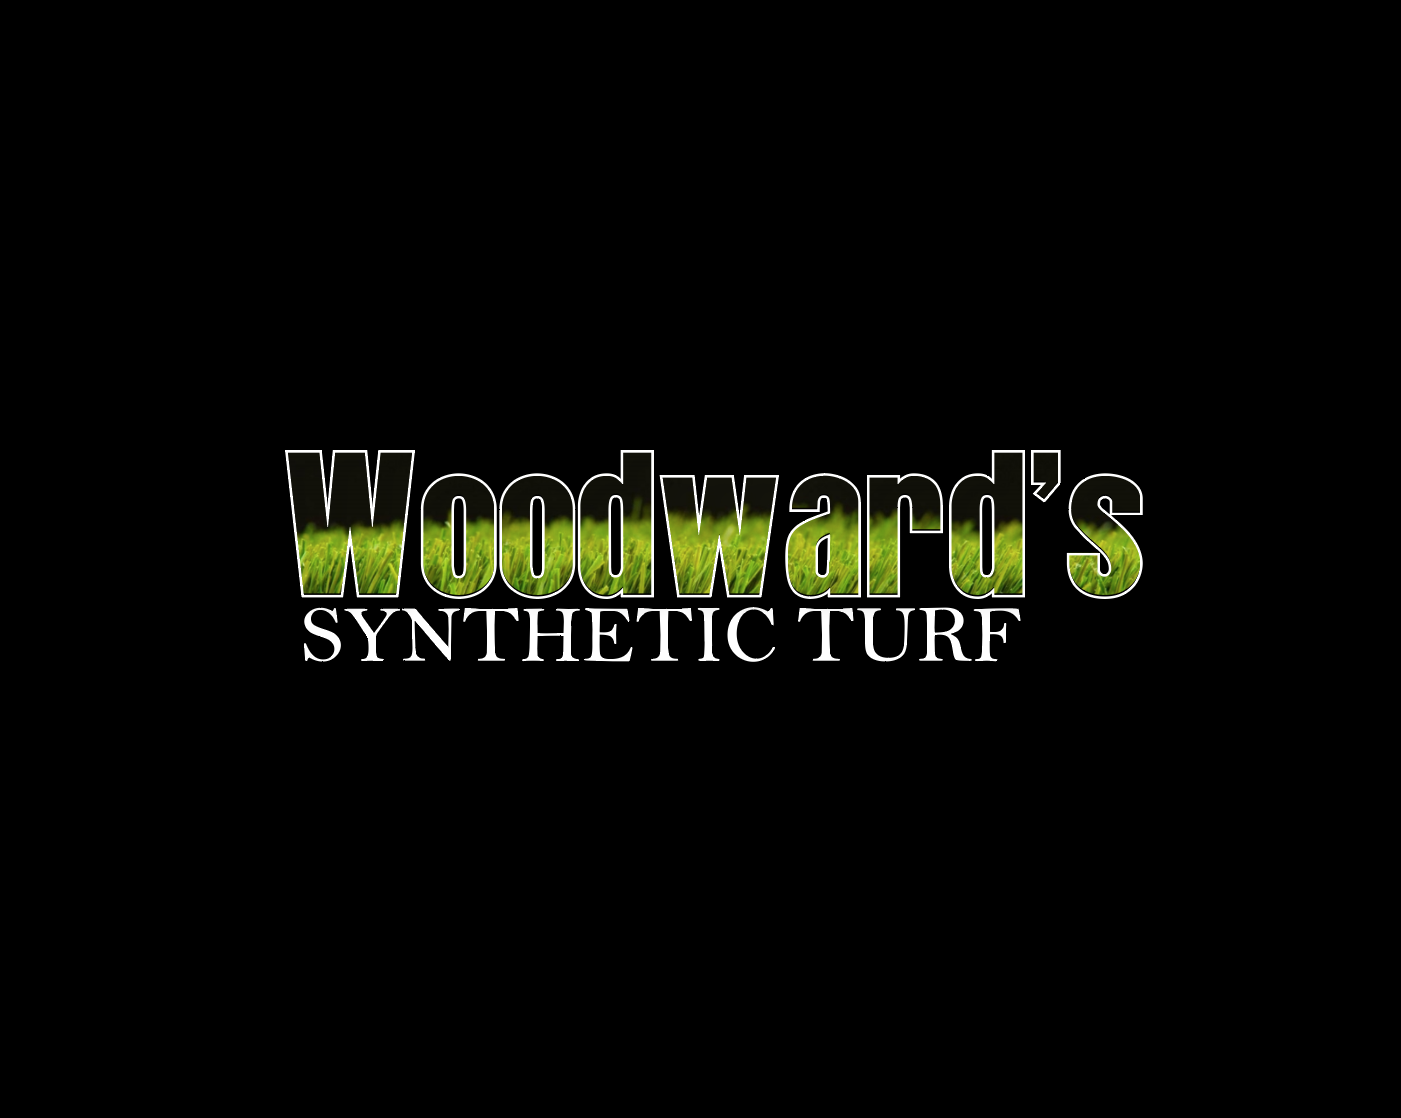 Logo Design by Sampath Gunathilaka - Entry No. 75 in the Logo Design Contest Artistic Logo Design for Woodward's Synthetic Turf.